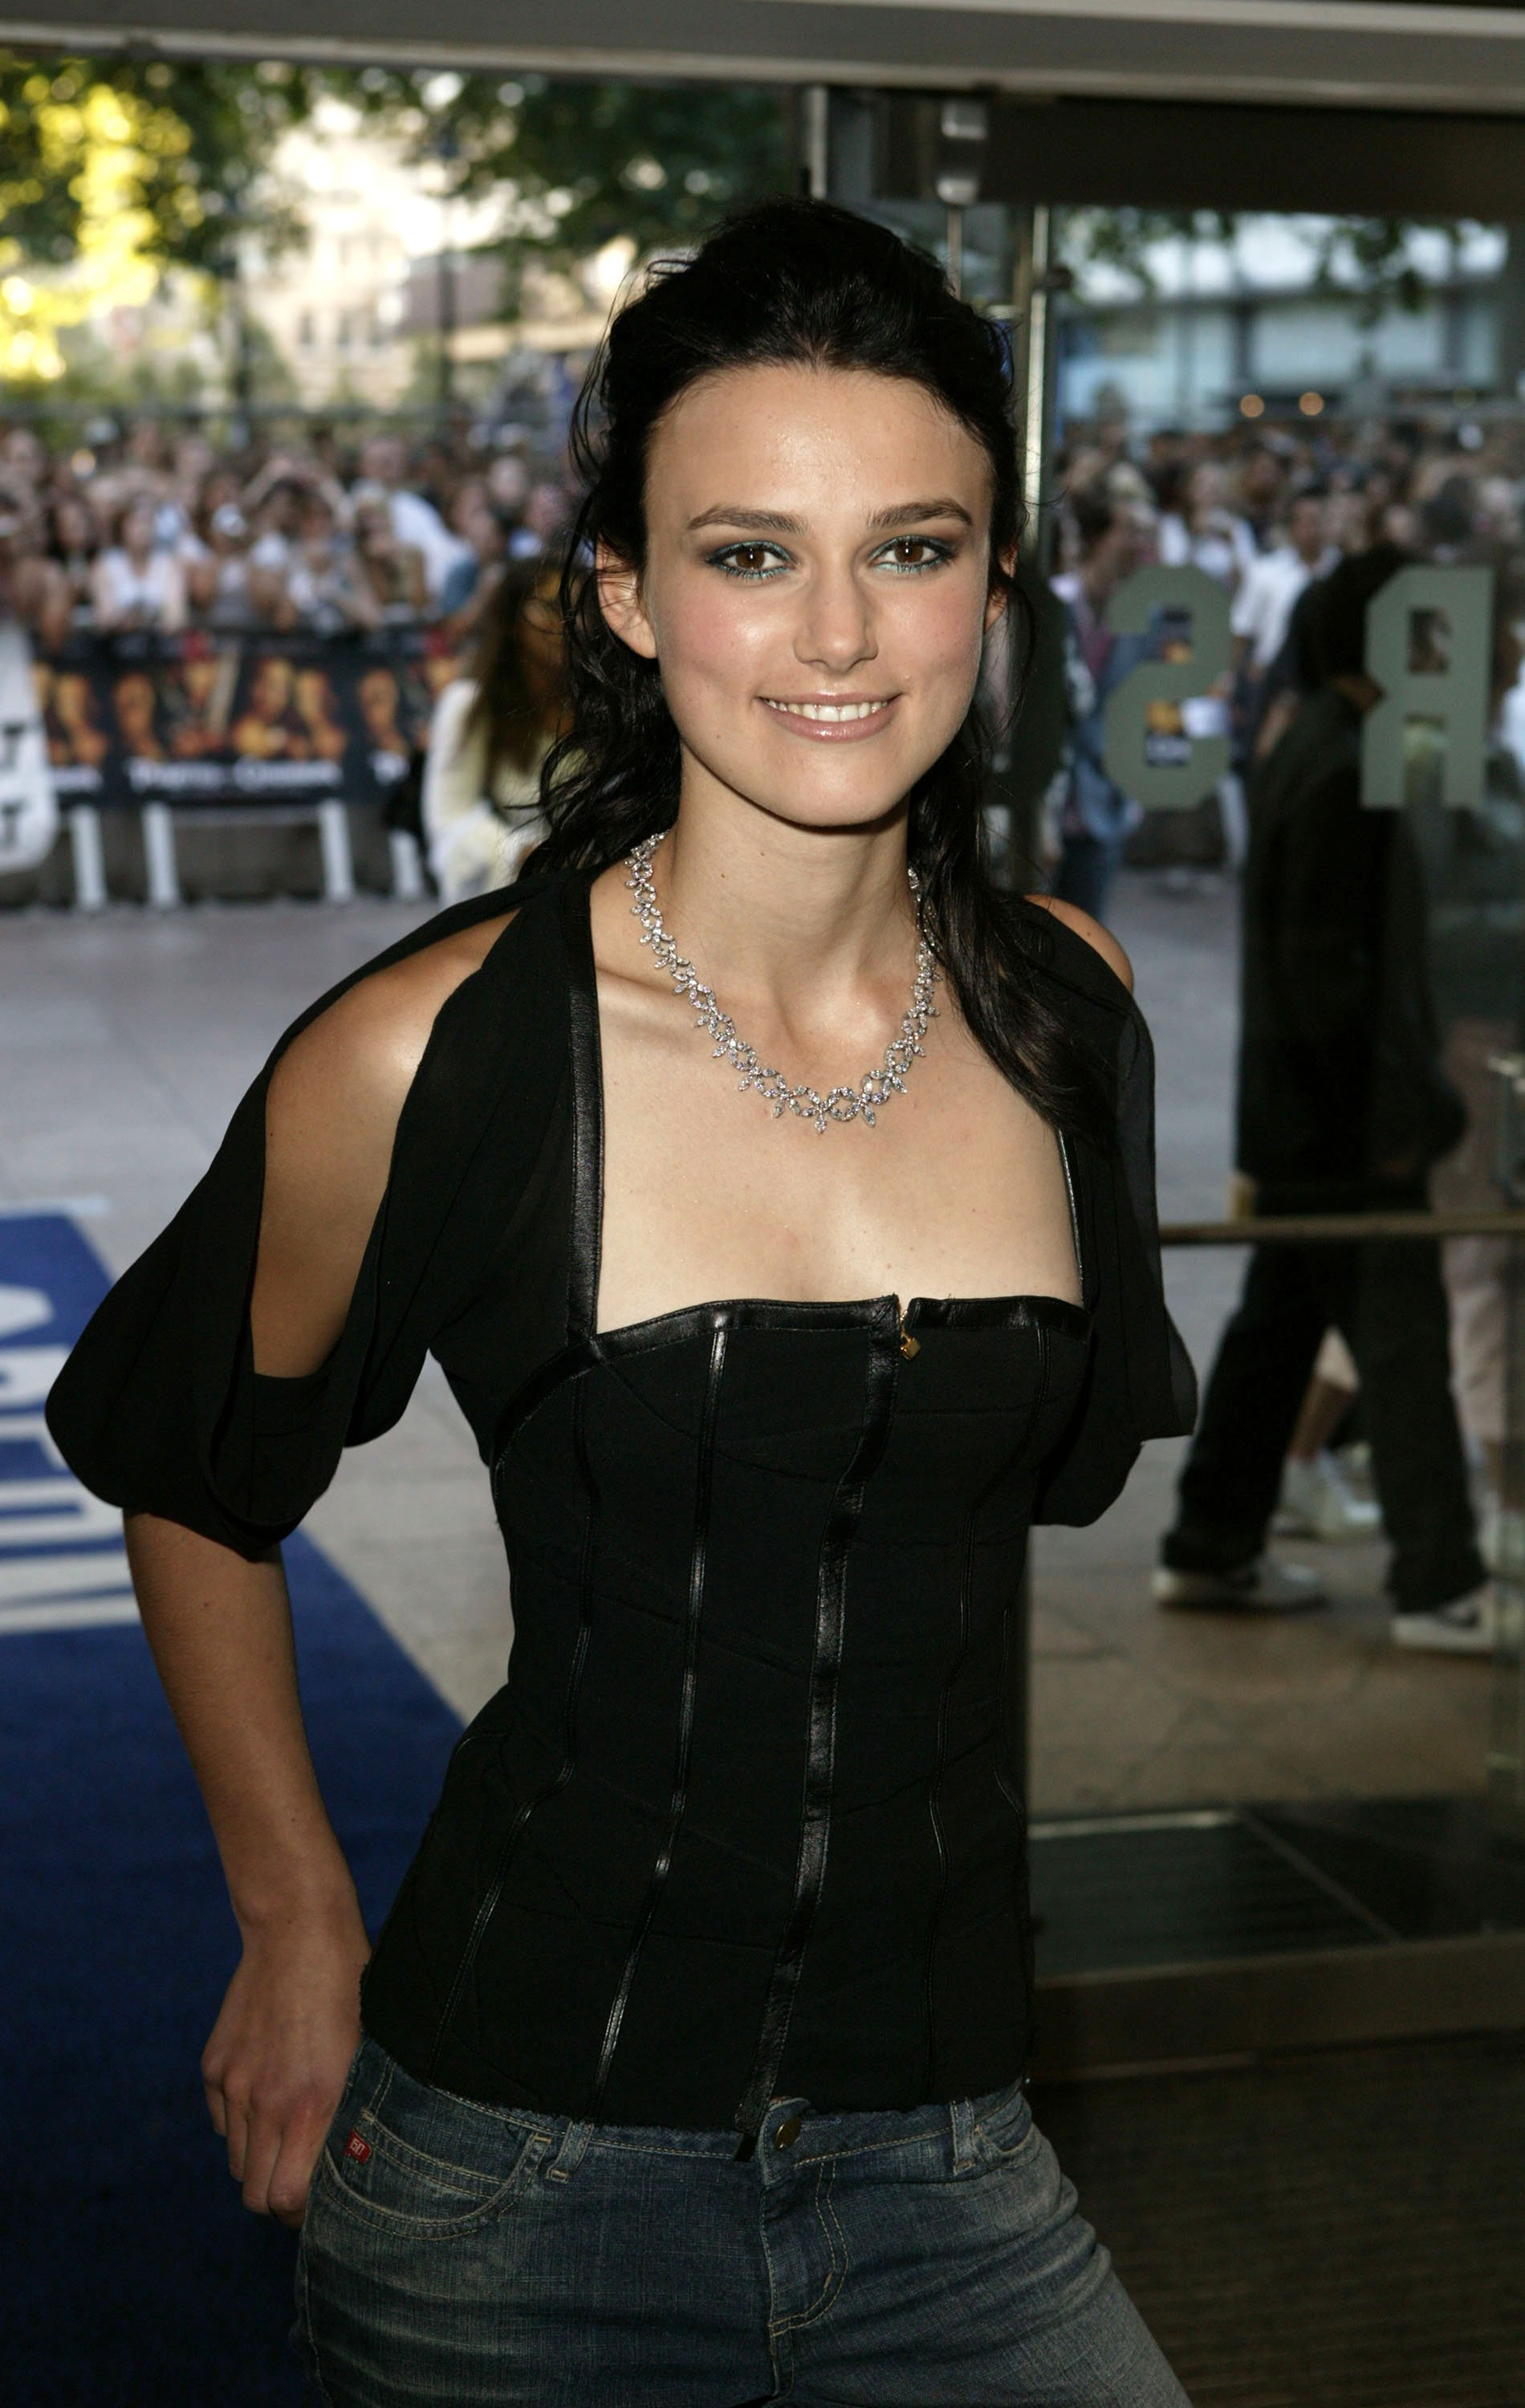 Die Schauspielerin Keira Knightley kommt zur Londoner Premiere von Pirates of the Caribbean - The Curse of the Black Pearl am Odeon Leicester Square am 14. Juli 2003 in London | Quelle: Getty Images